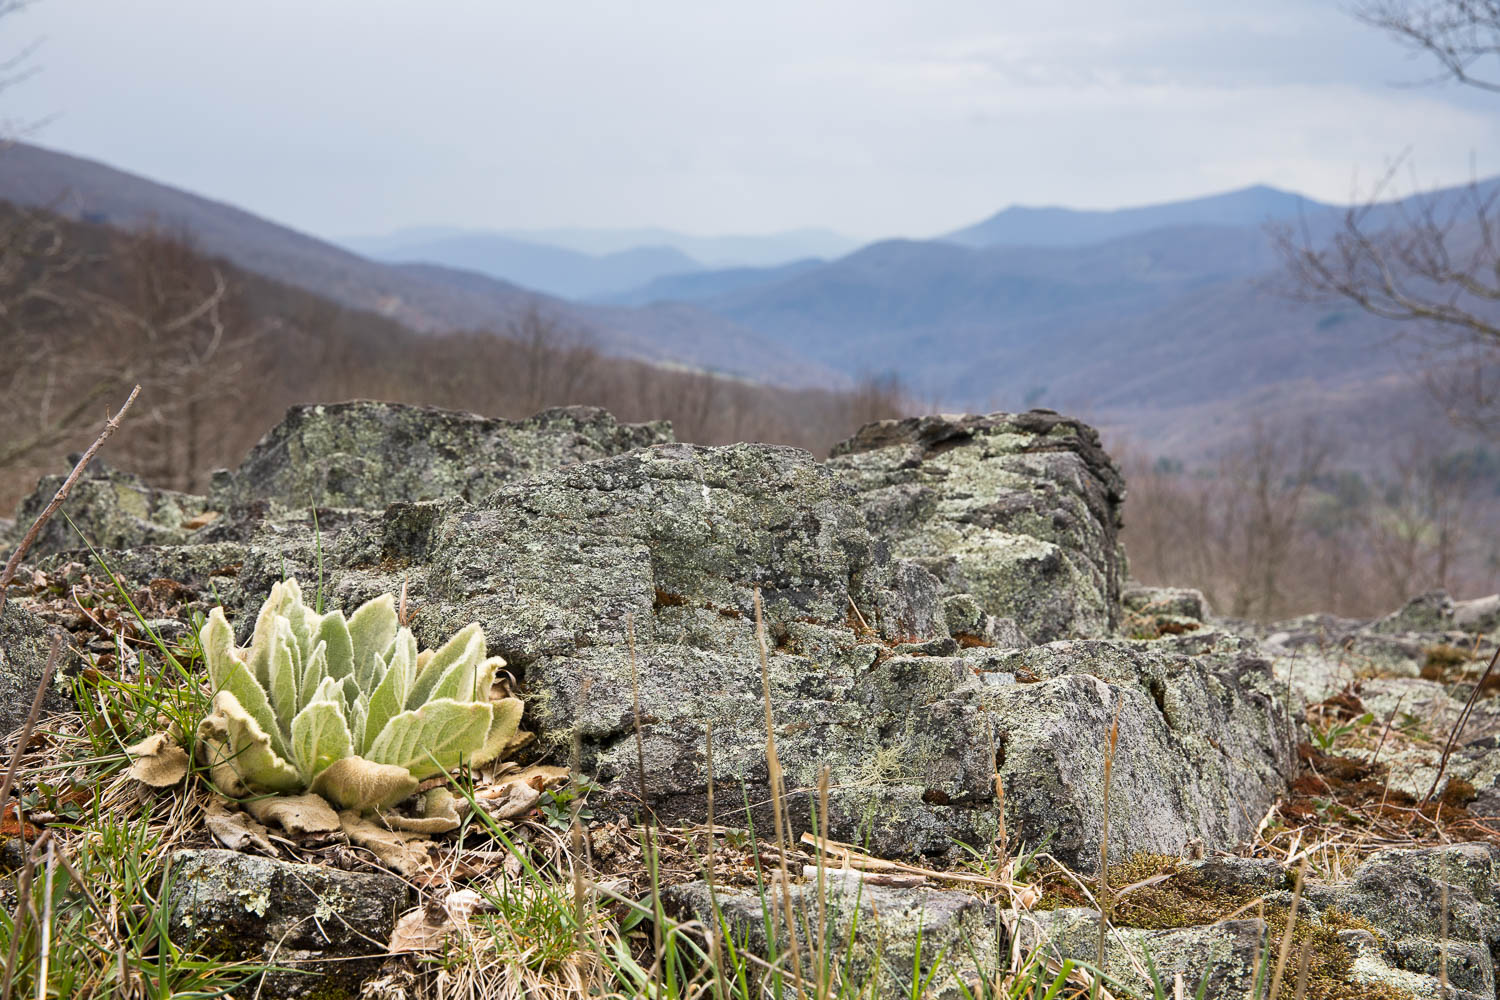 View from Appalachian Trail near Yellow Mountain Gap